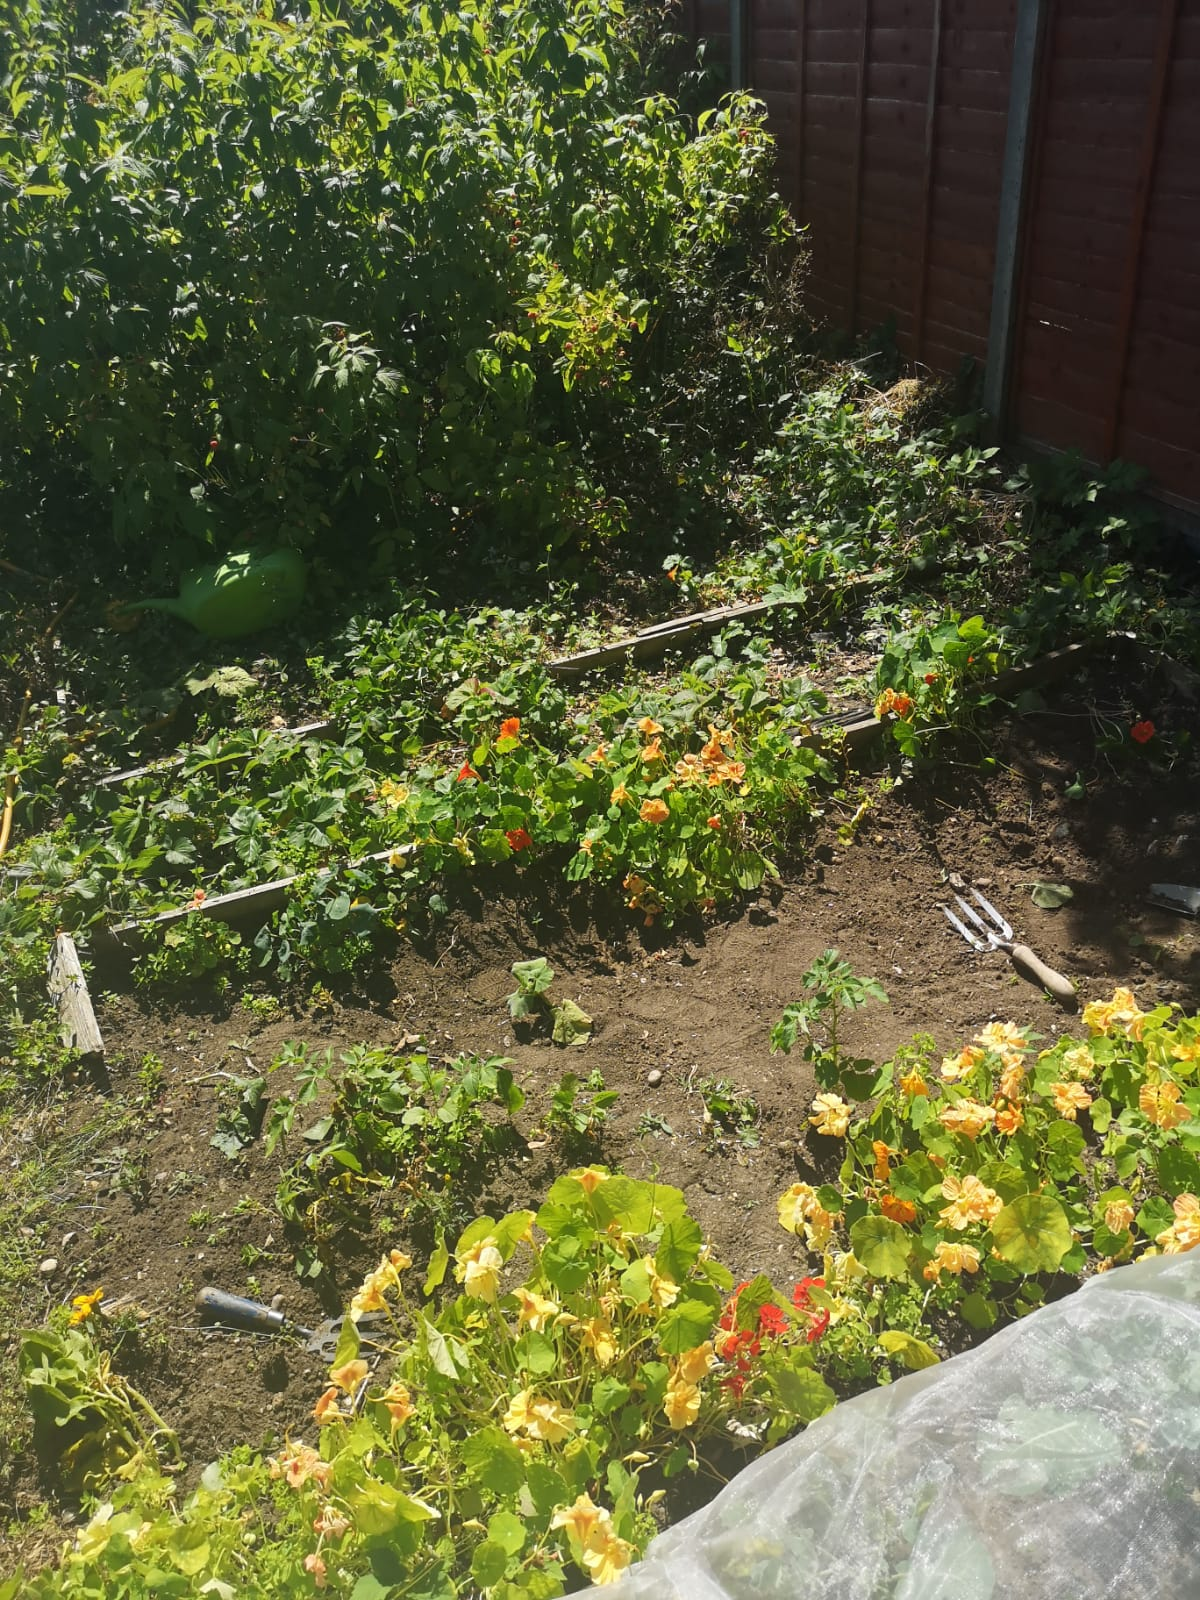 Nasturtiums against a background of potatoes, strawberries and out of control raspberry canes!